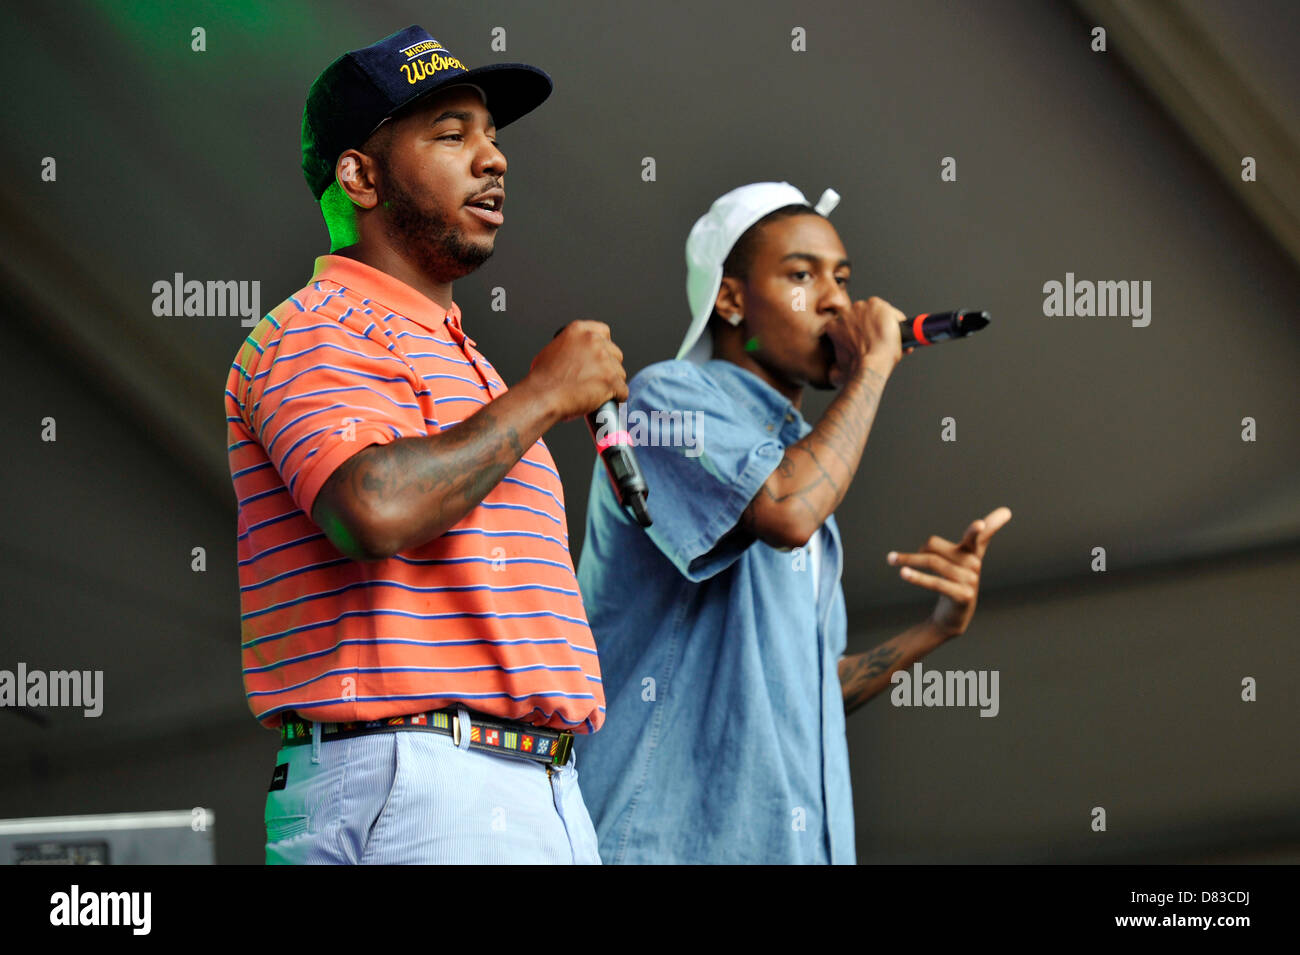 The Cool Kids Lollapalooza Music Festival 2011 - Performances - Day 3 Chicago, Illinois - 07.08.11 - Stock Image